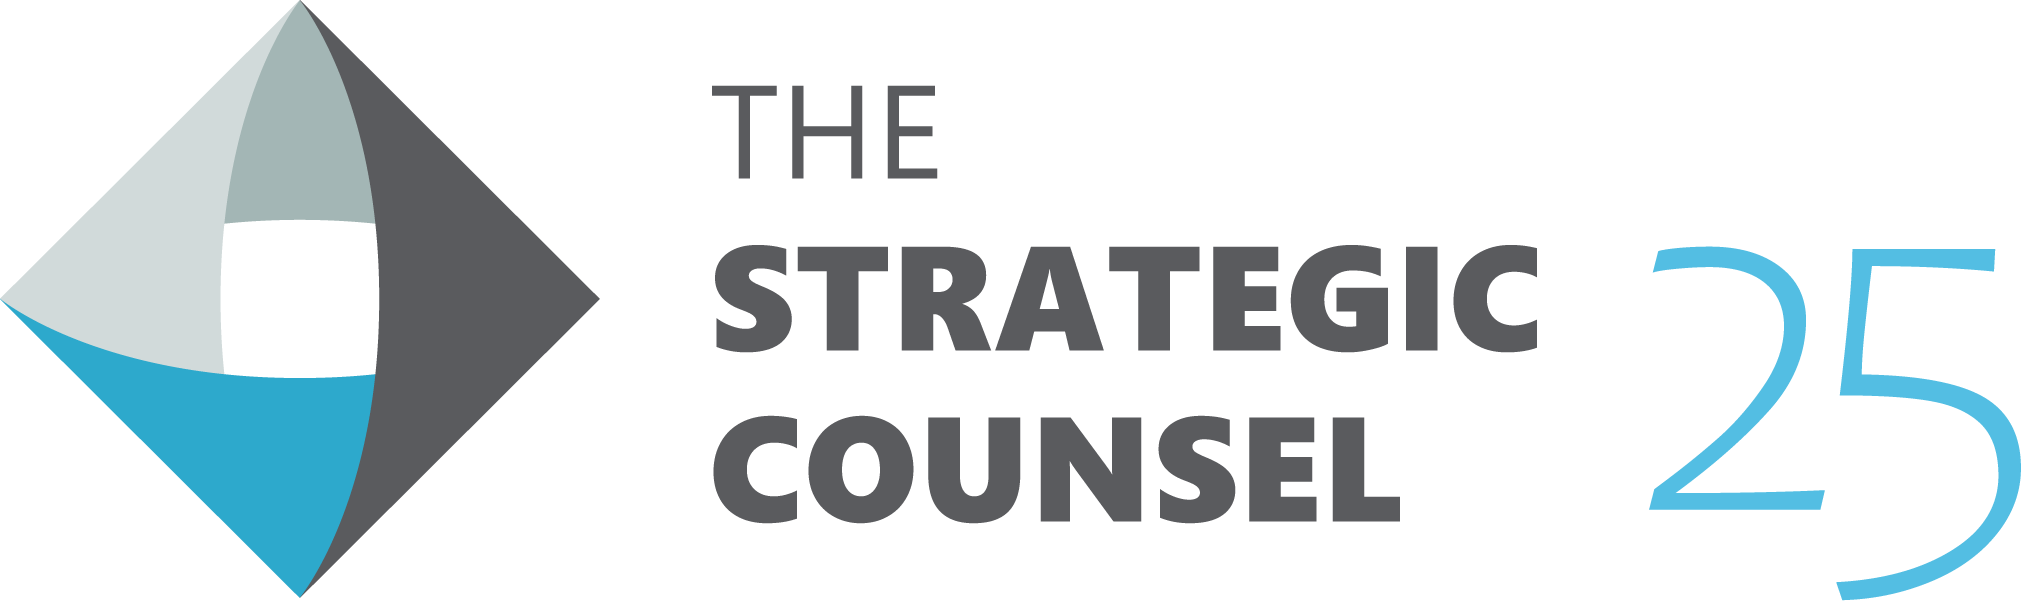 The Strategic Counsel